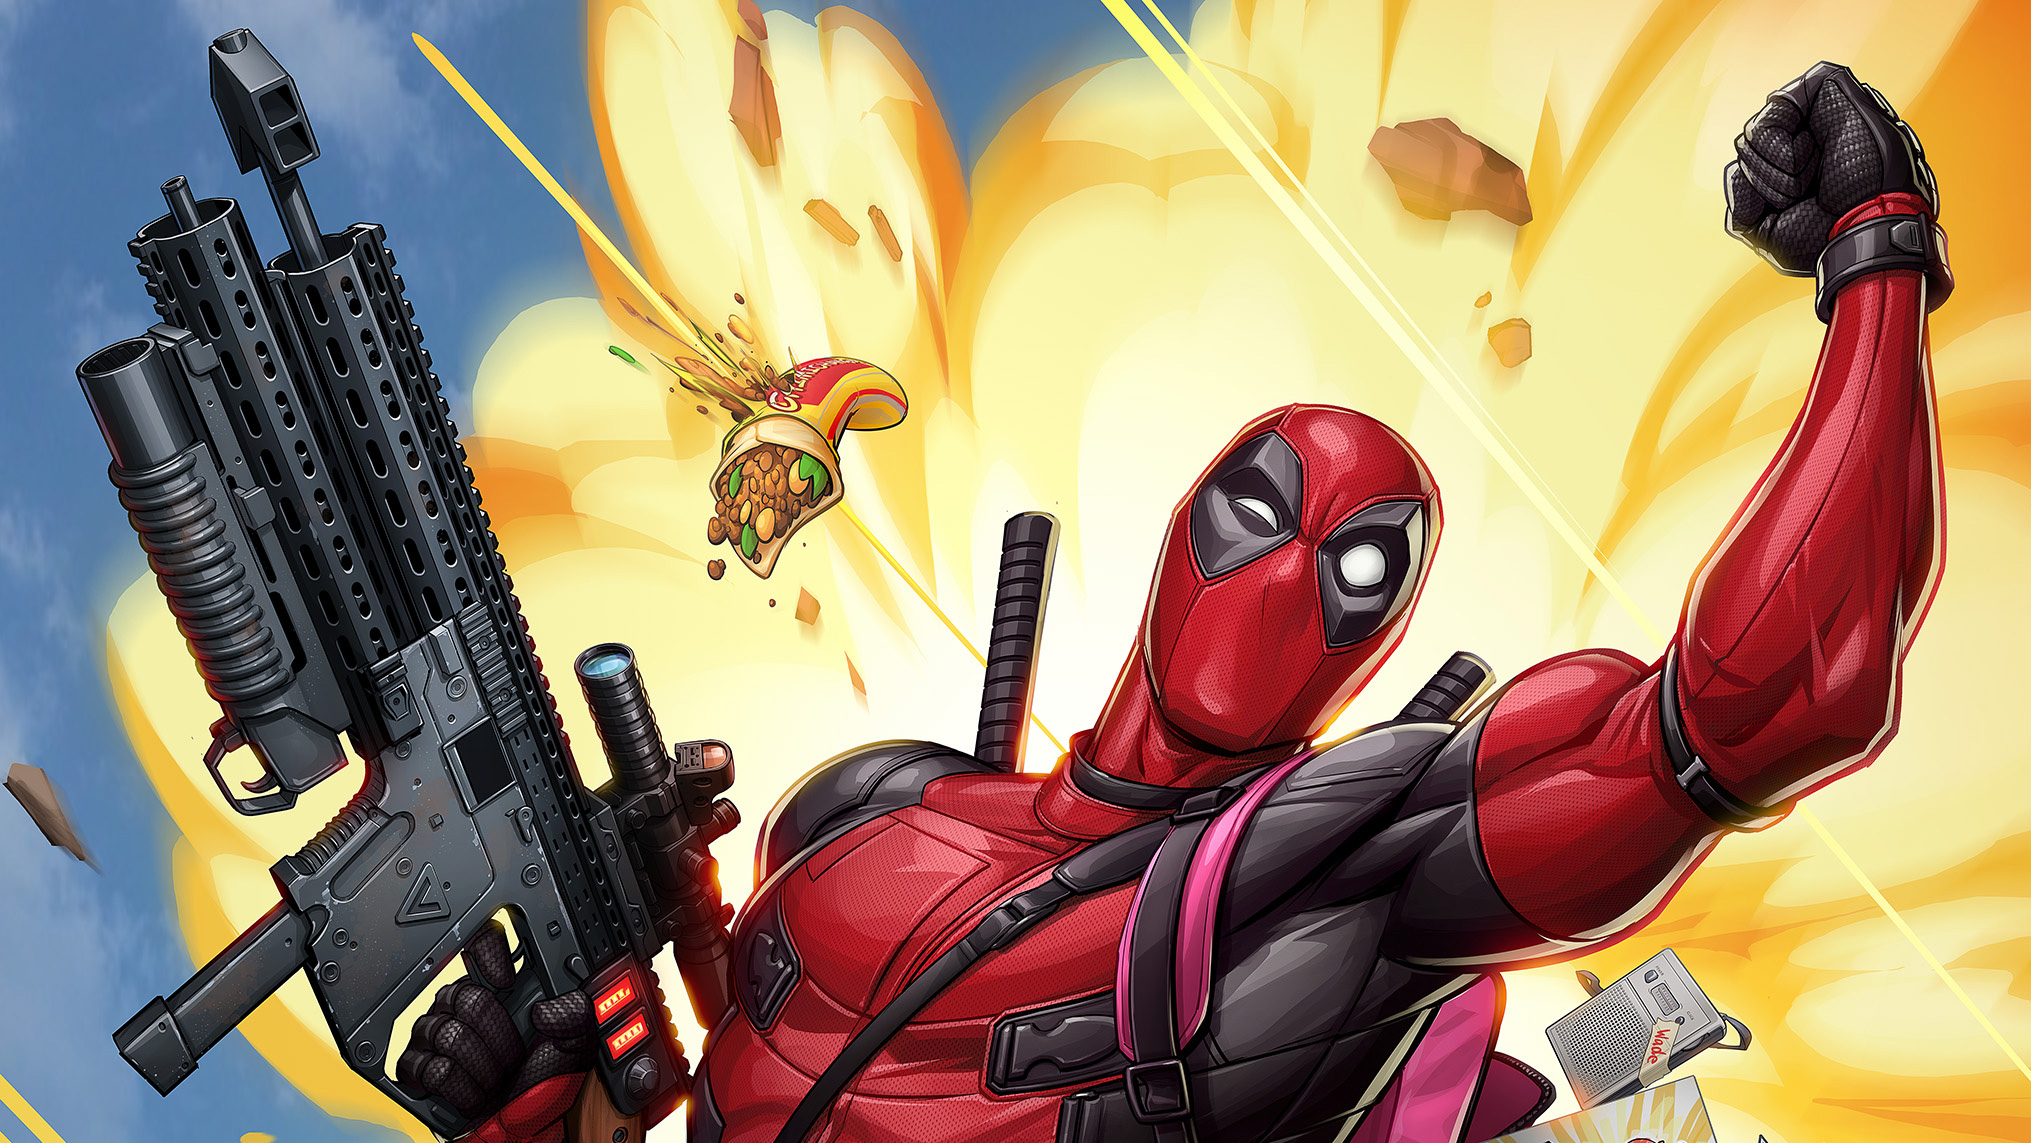 Deadpool 2 Movie Imax Poster, HD Movies, 4k Wallpapers